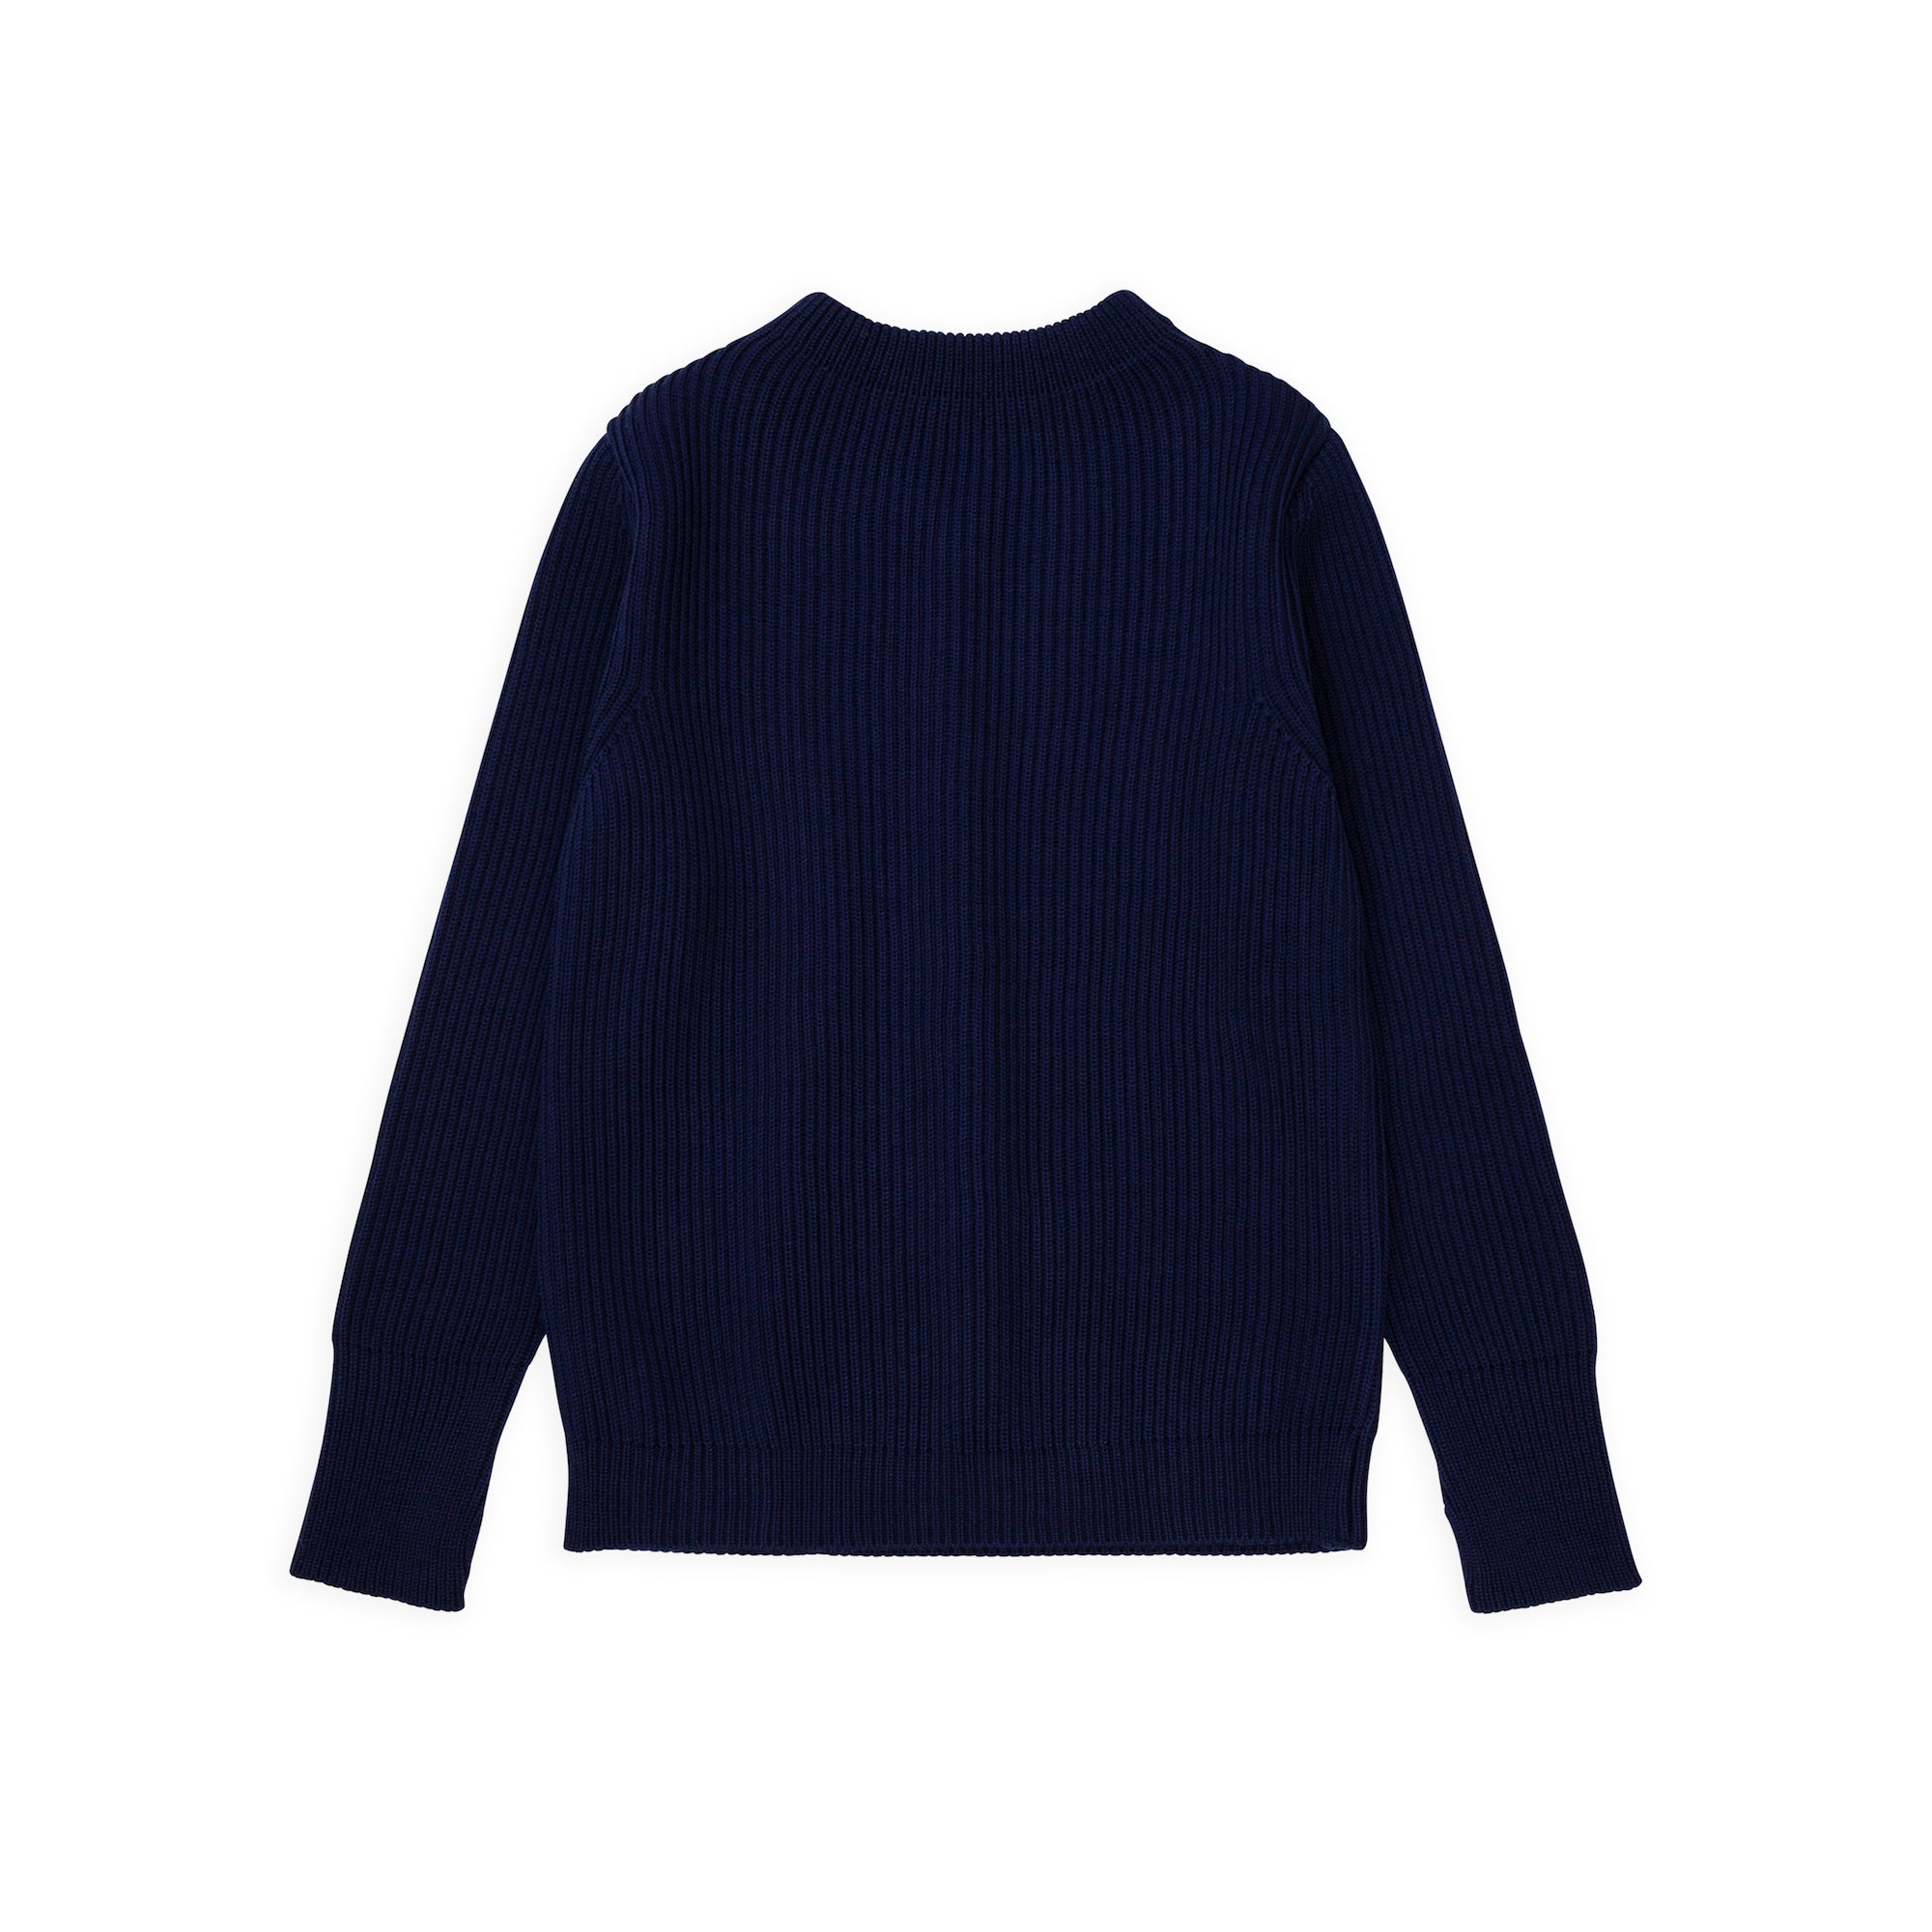 Navy Crewneck - Royal Blue